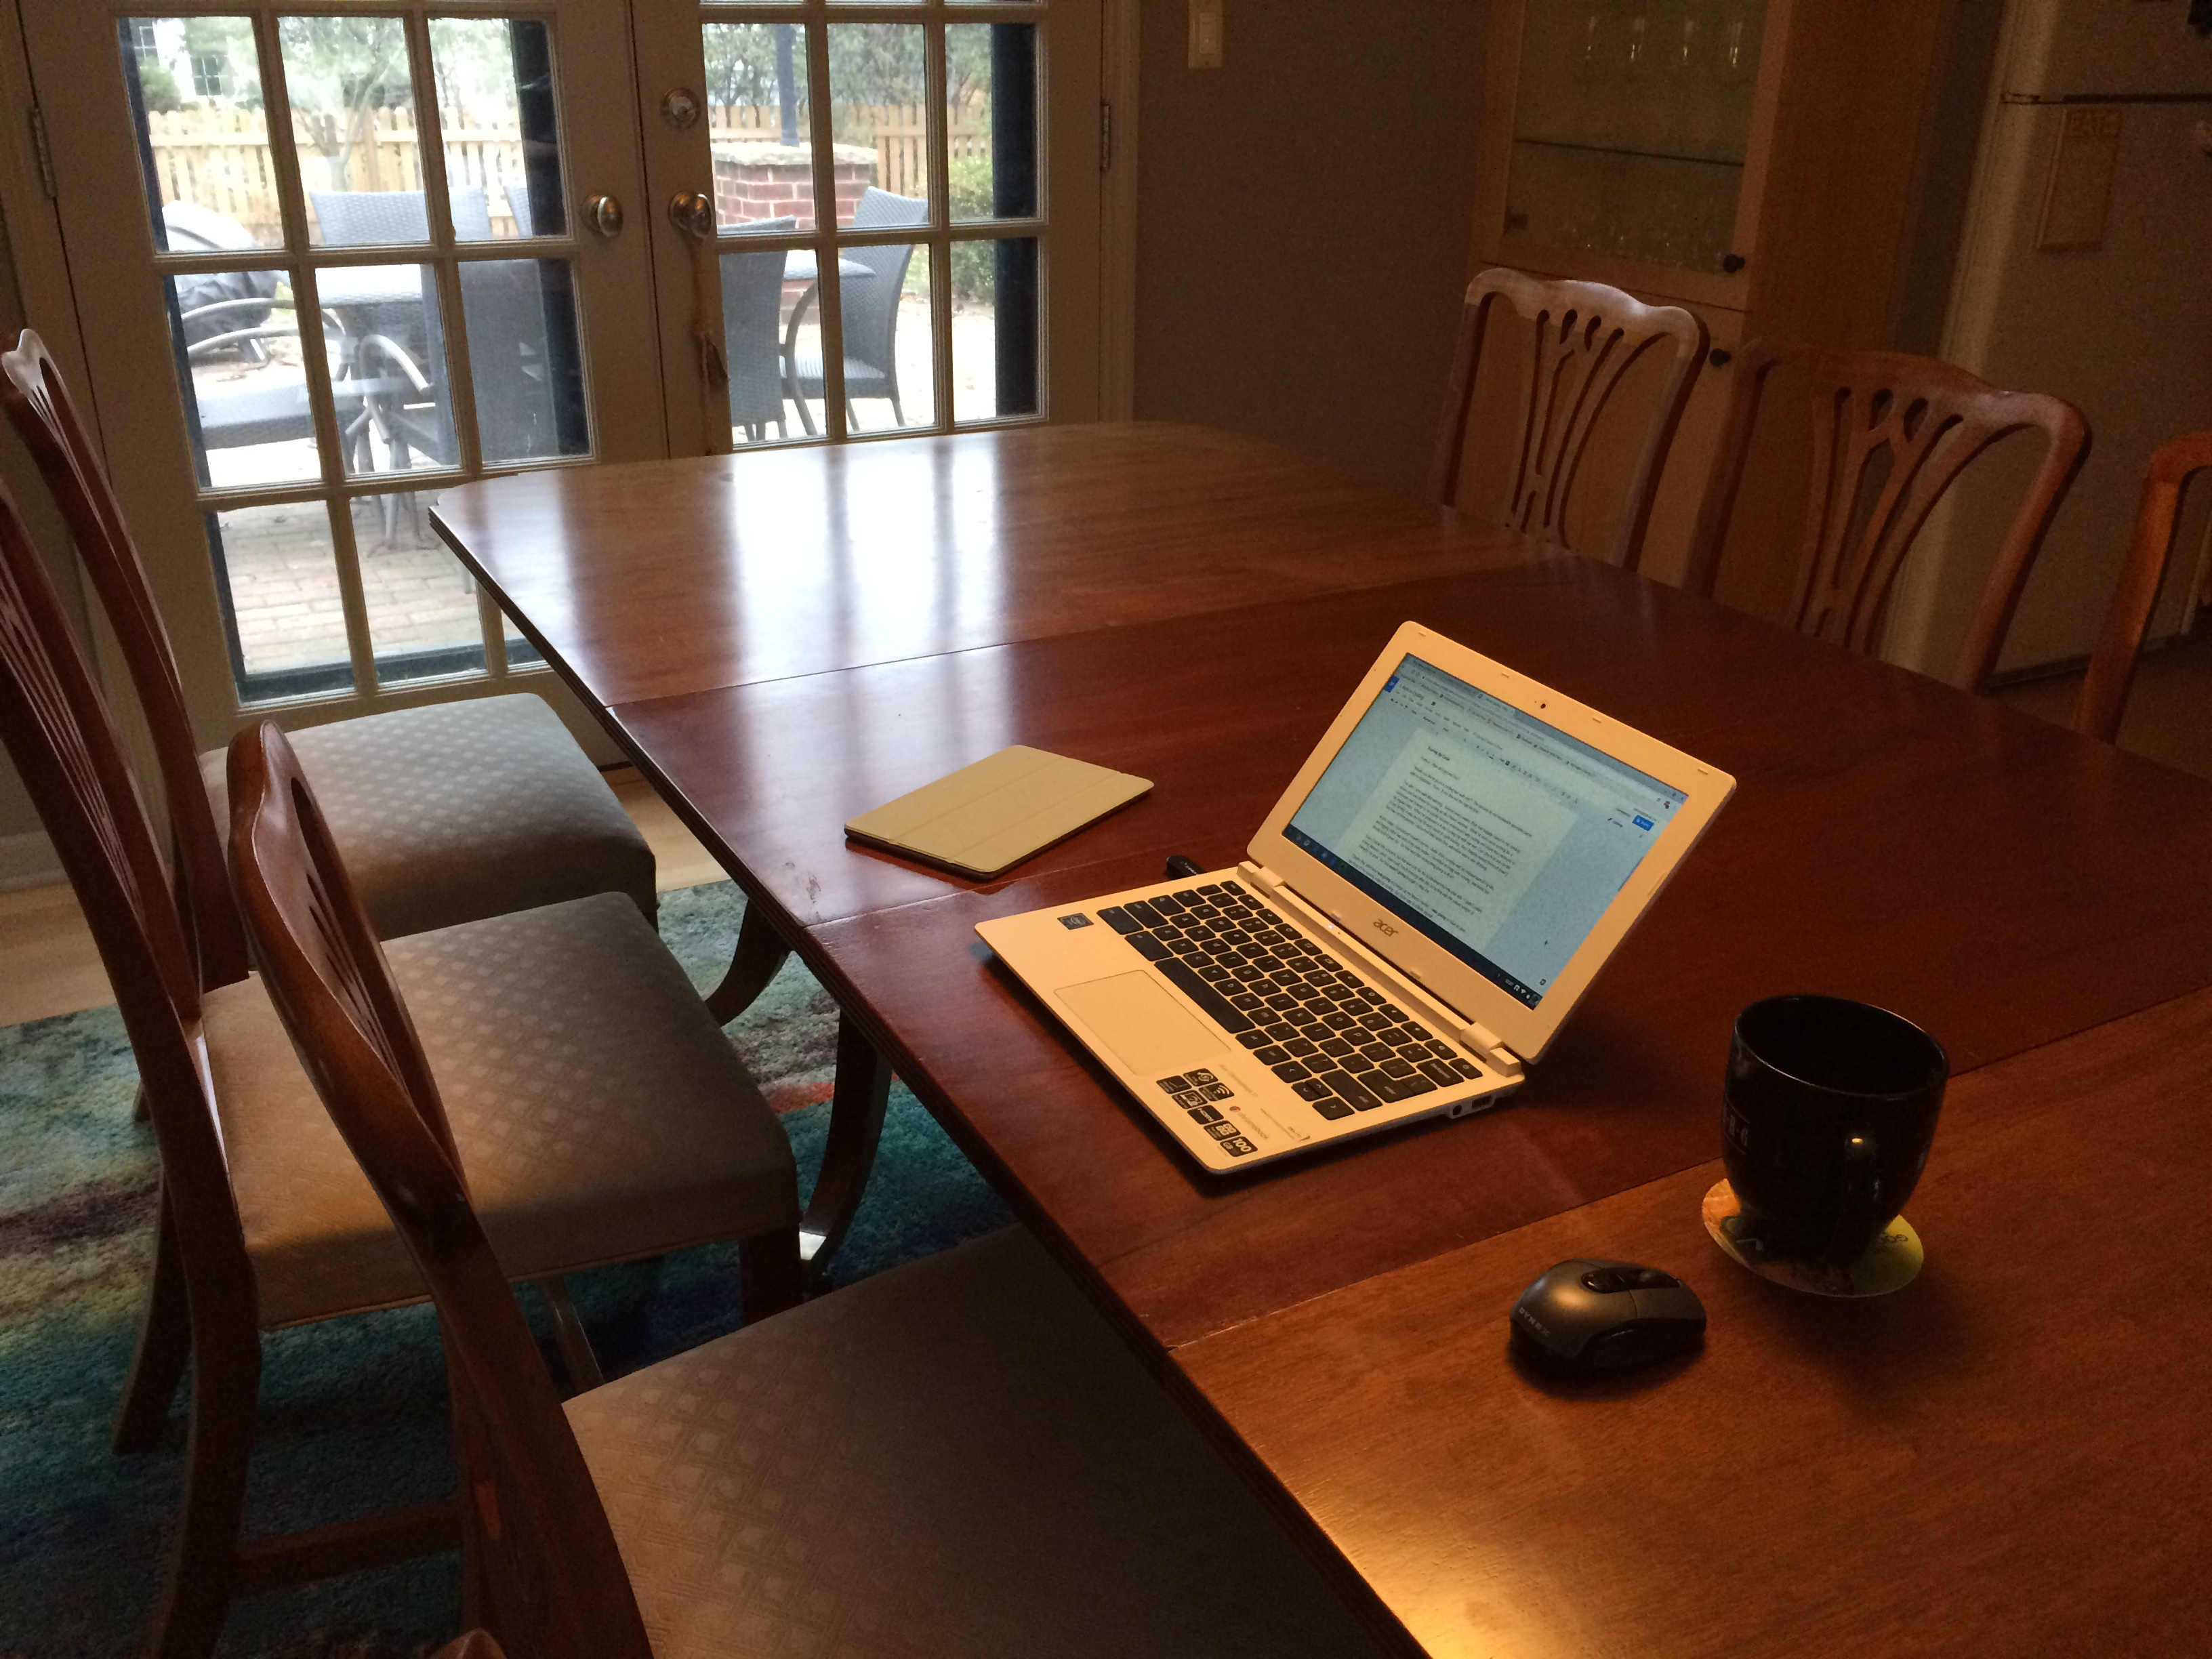 Writing at Sinclair Lewis' table (1)